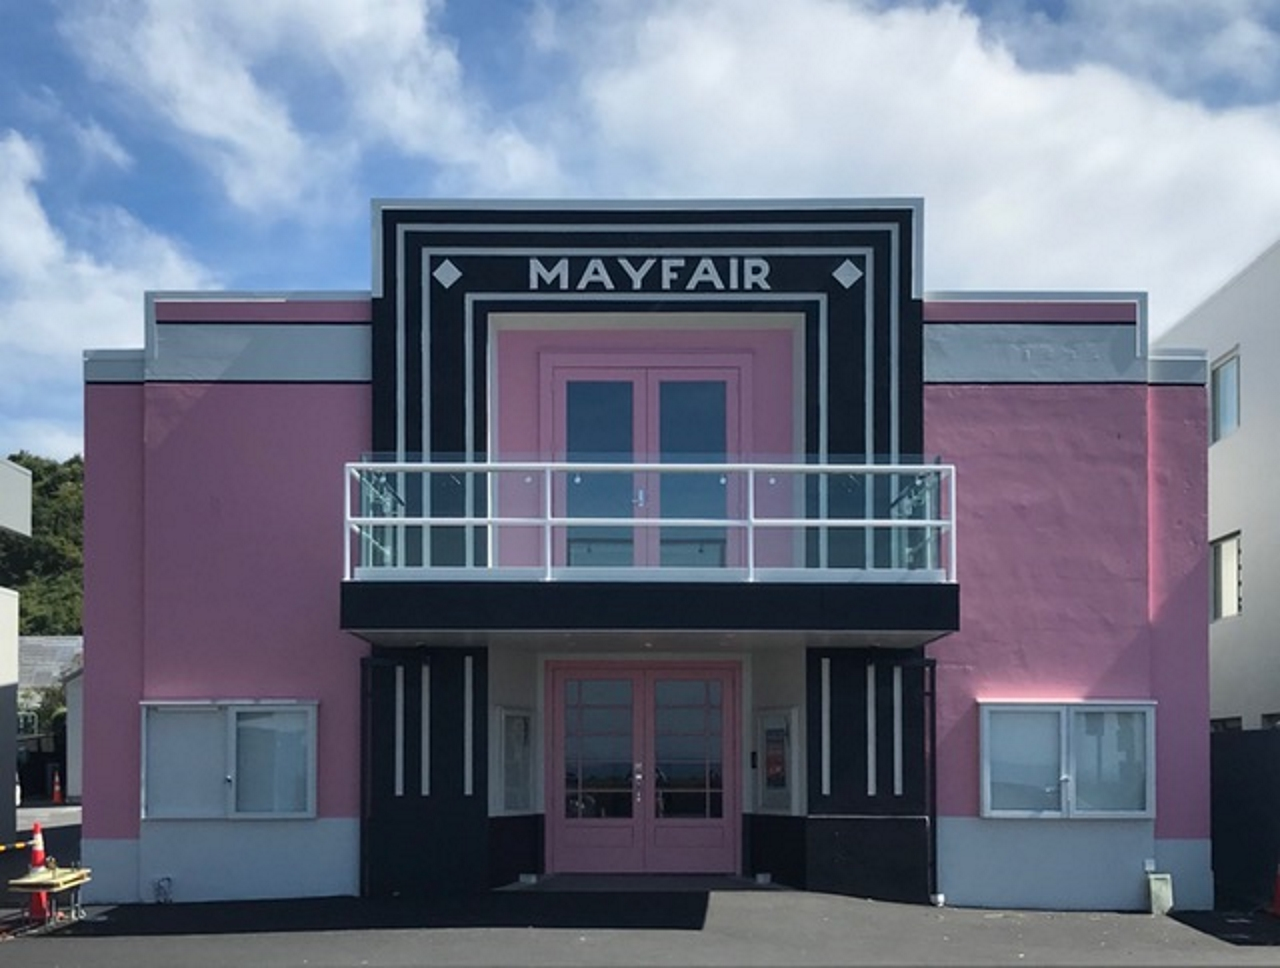 Kaikoura's Mayfair Theatre is set to reopen after its $3.6 million restoration. Photo: File